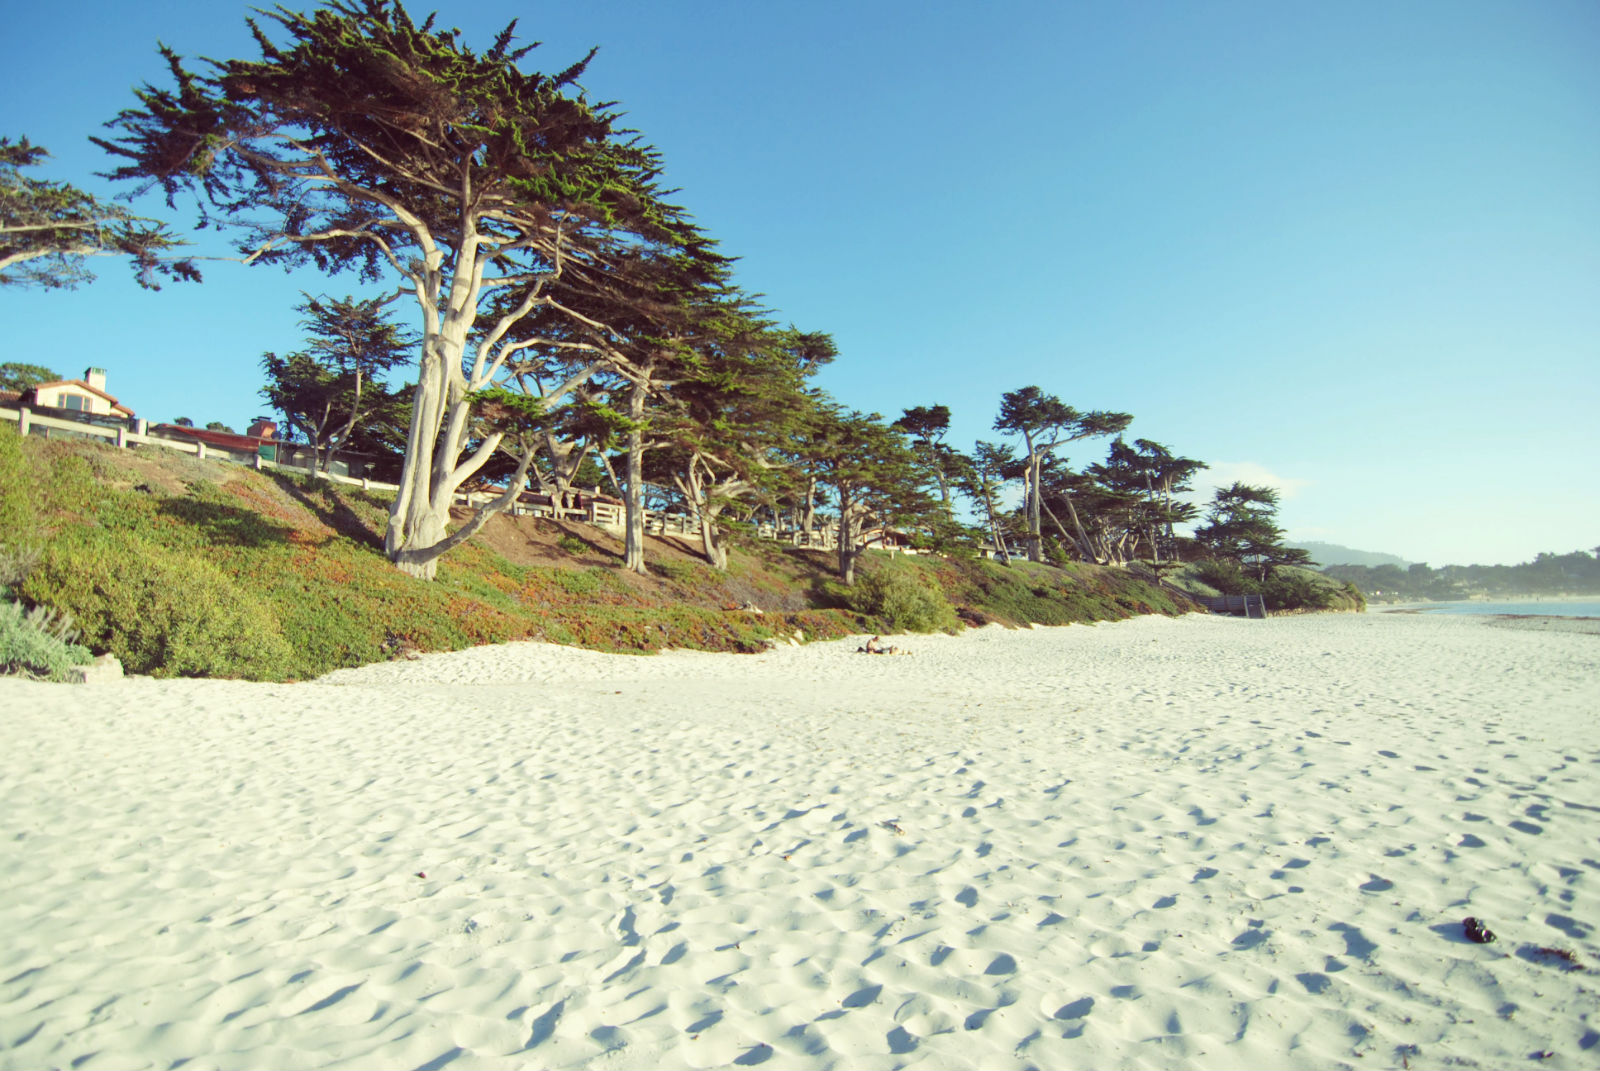 Another view of the Carmel Coast